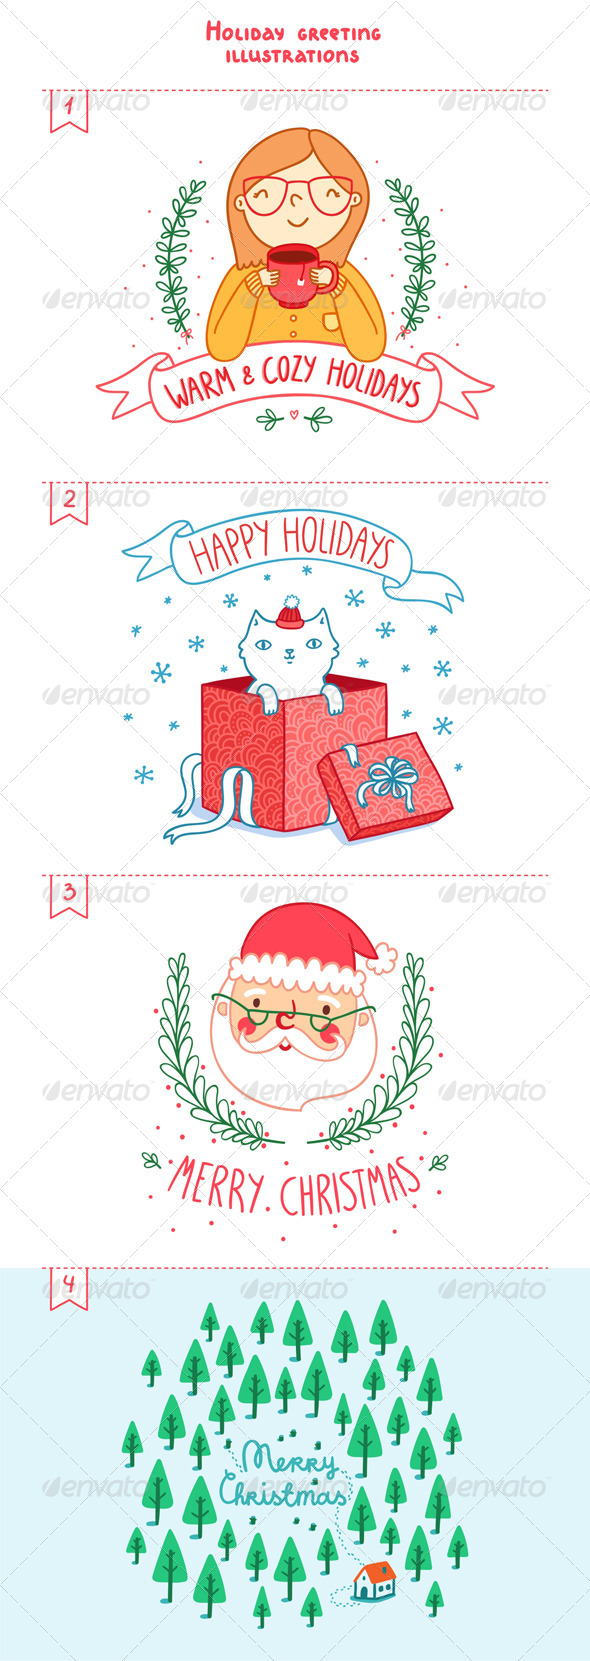 GraphicRiver Holidays Greetings 6386585